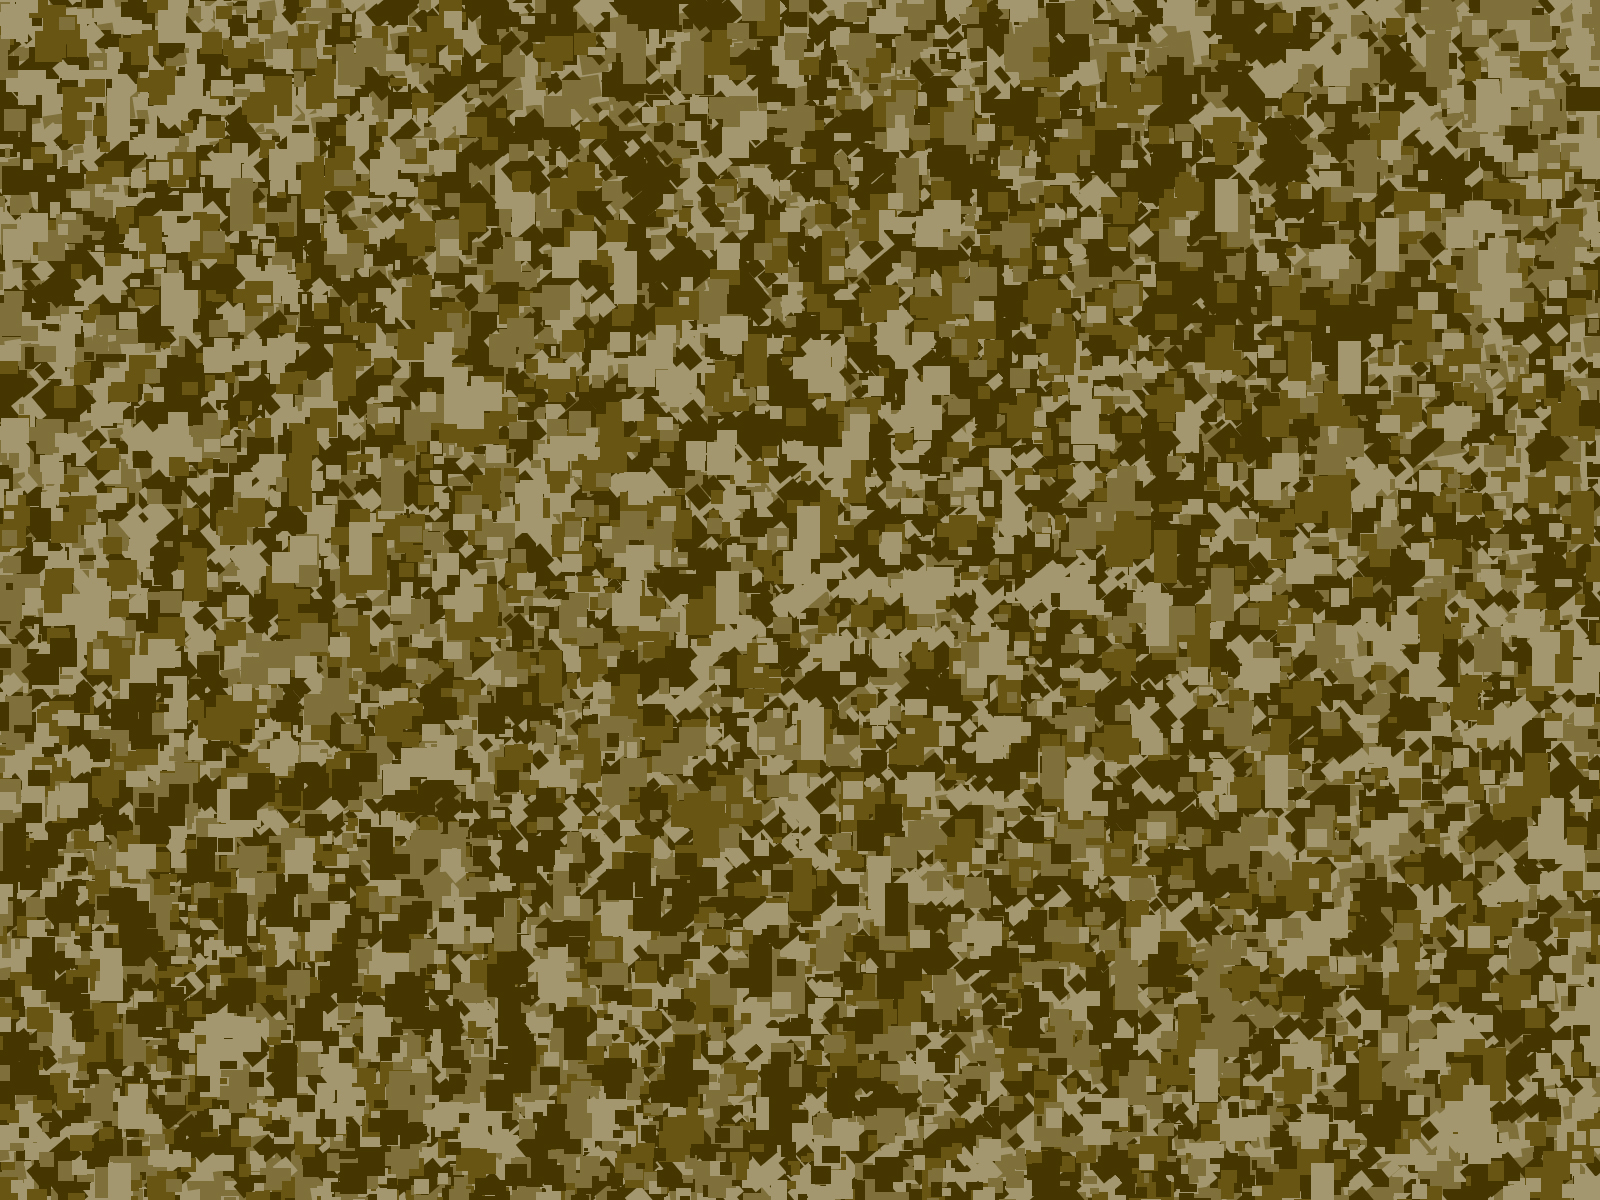 camo desktop wallpaper full screen - photo #20